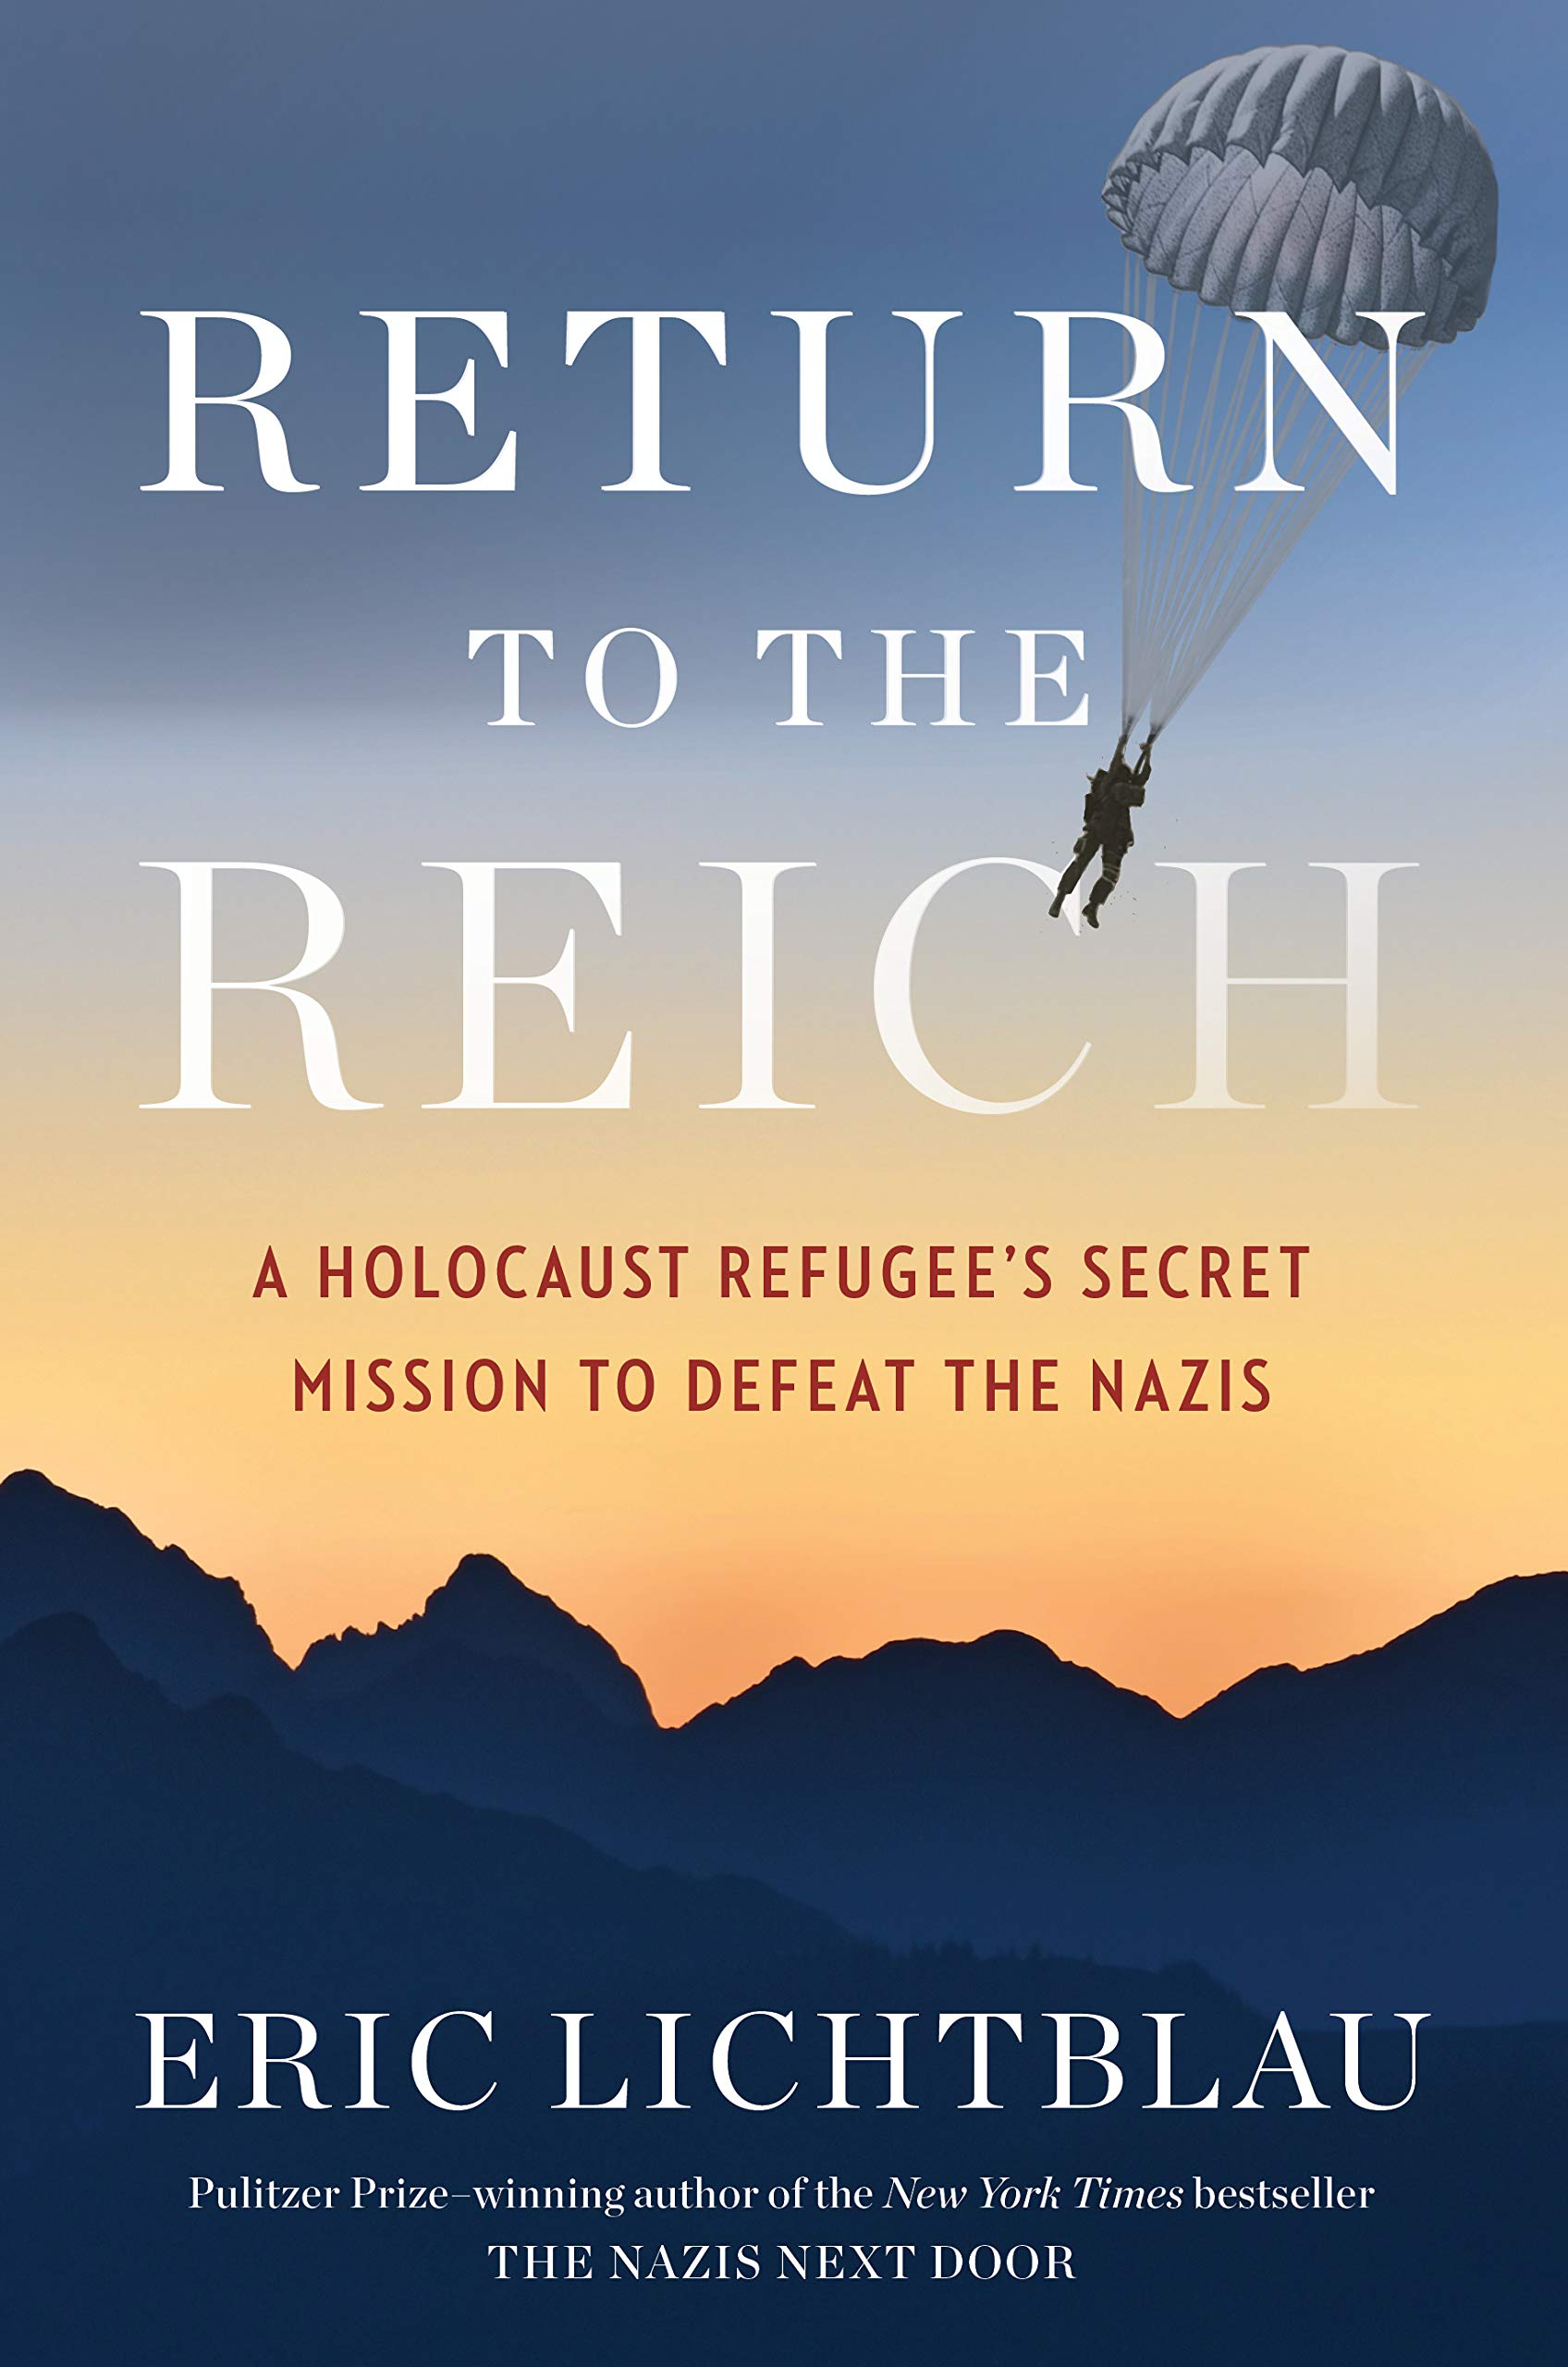 Image result for Return to the Reich – Eric Lichtblau